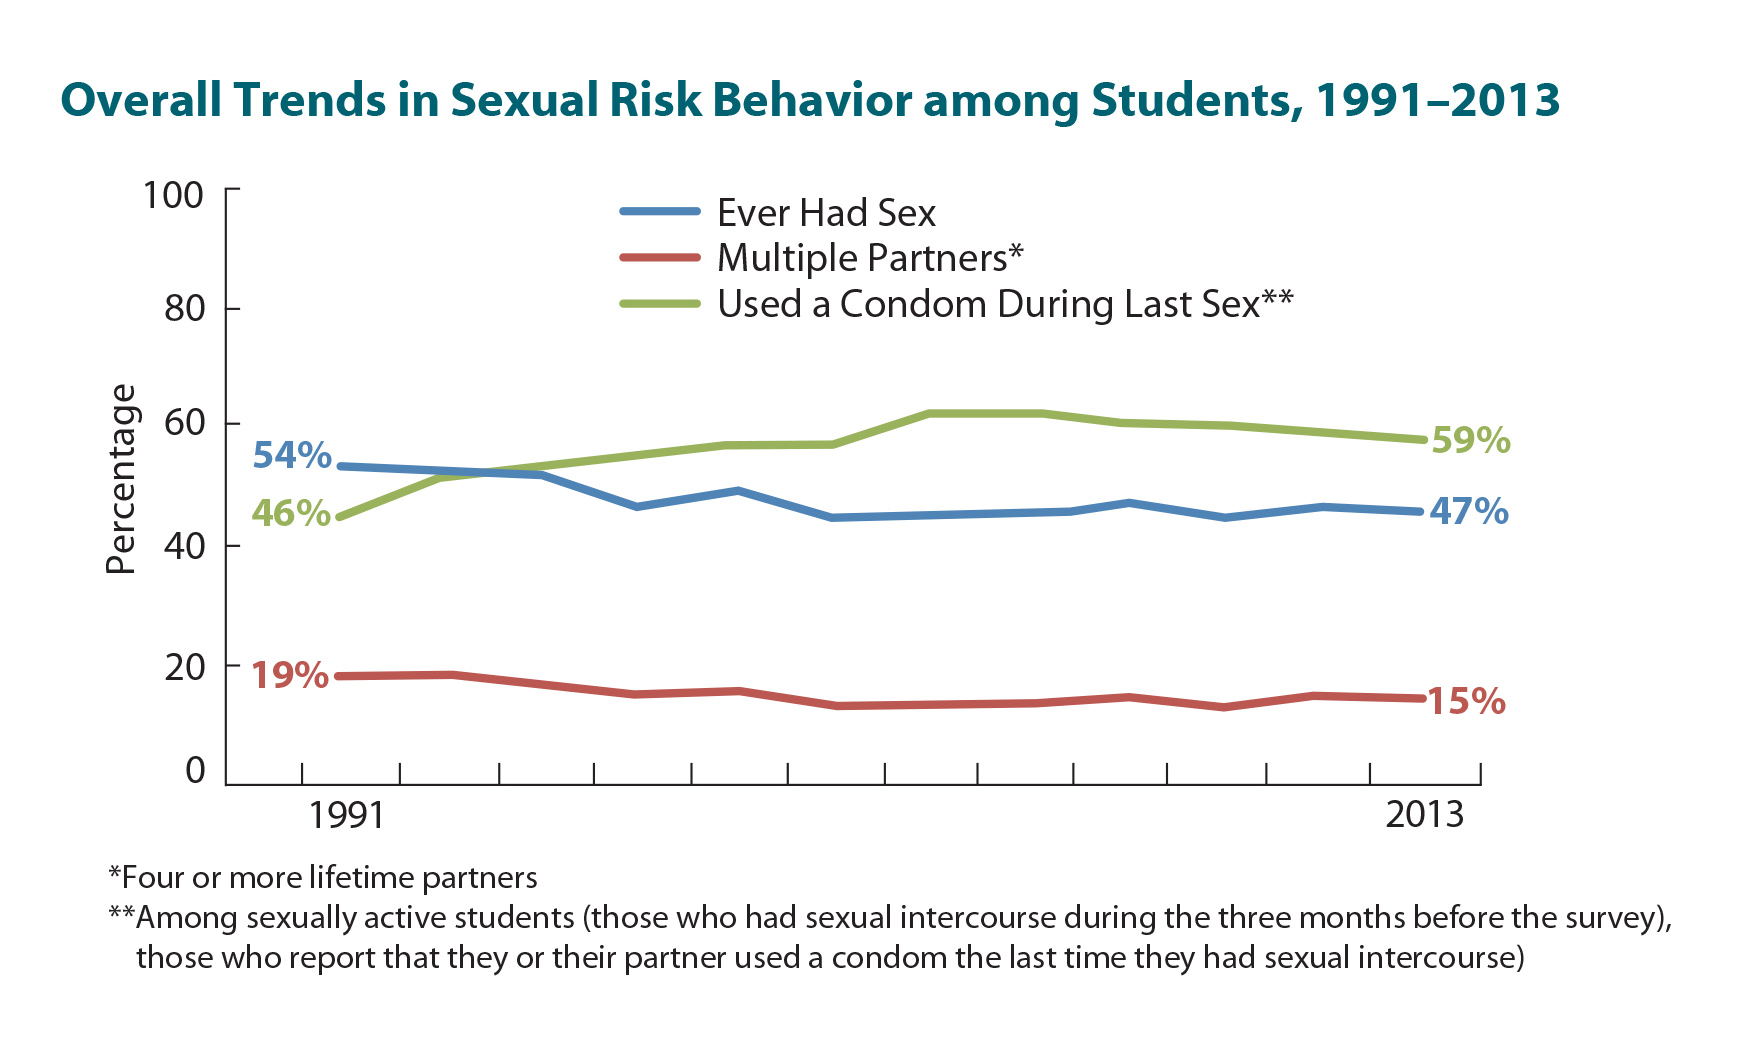 sexual risk behaviors of female adolescents The sexual risk-taking behaviors of female adolescents carry potential long-term consequences such as unintended pregnancy, sexually transmitted infections, and aids/hiv infection these.